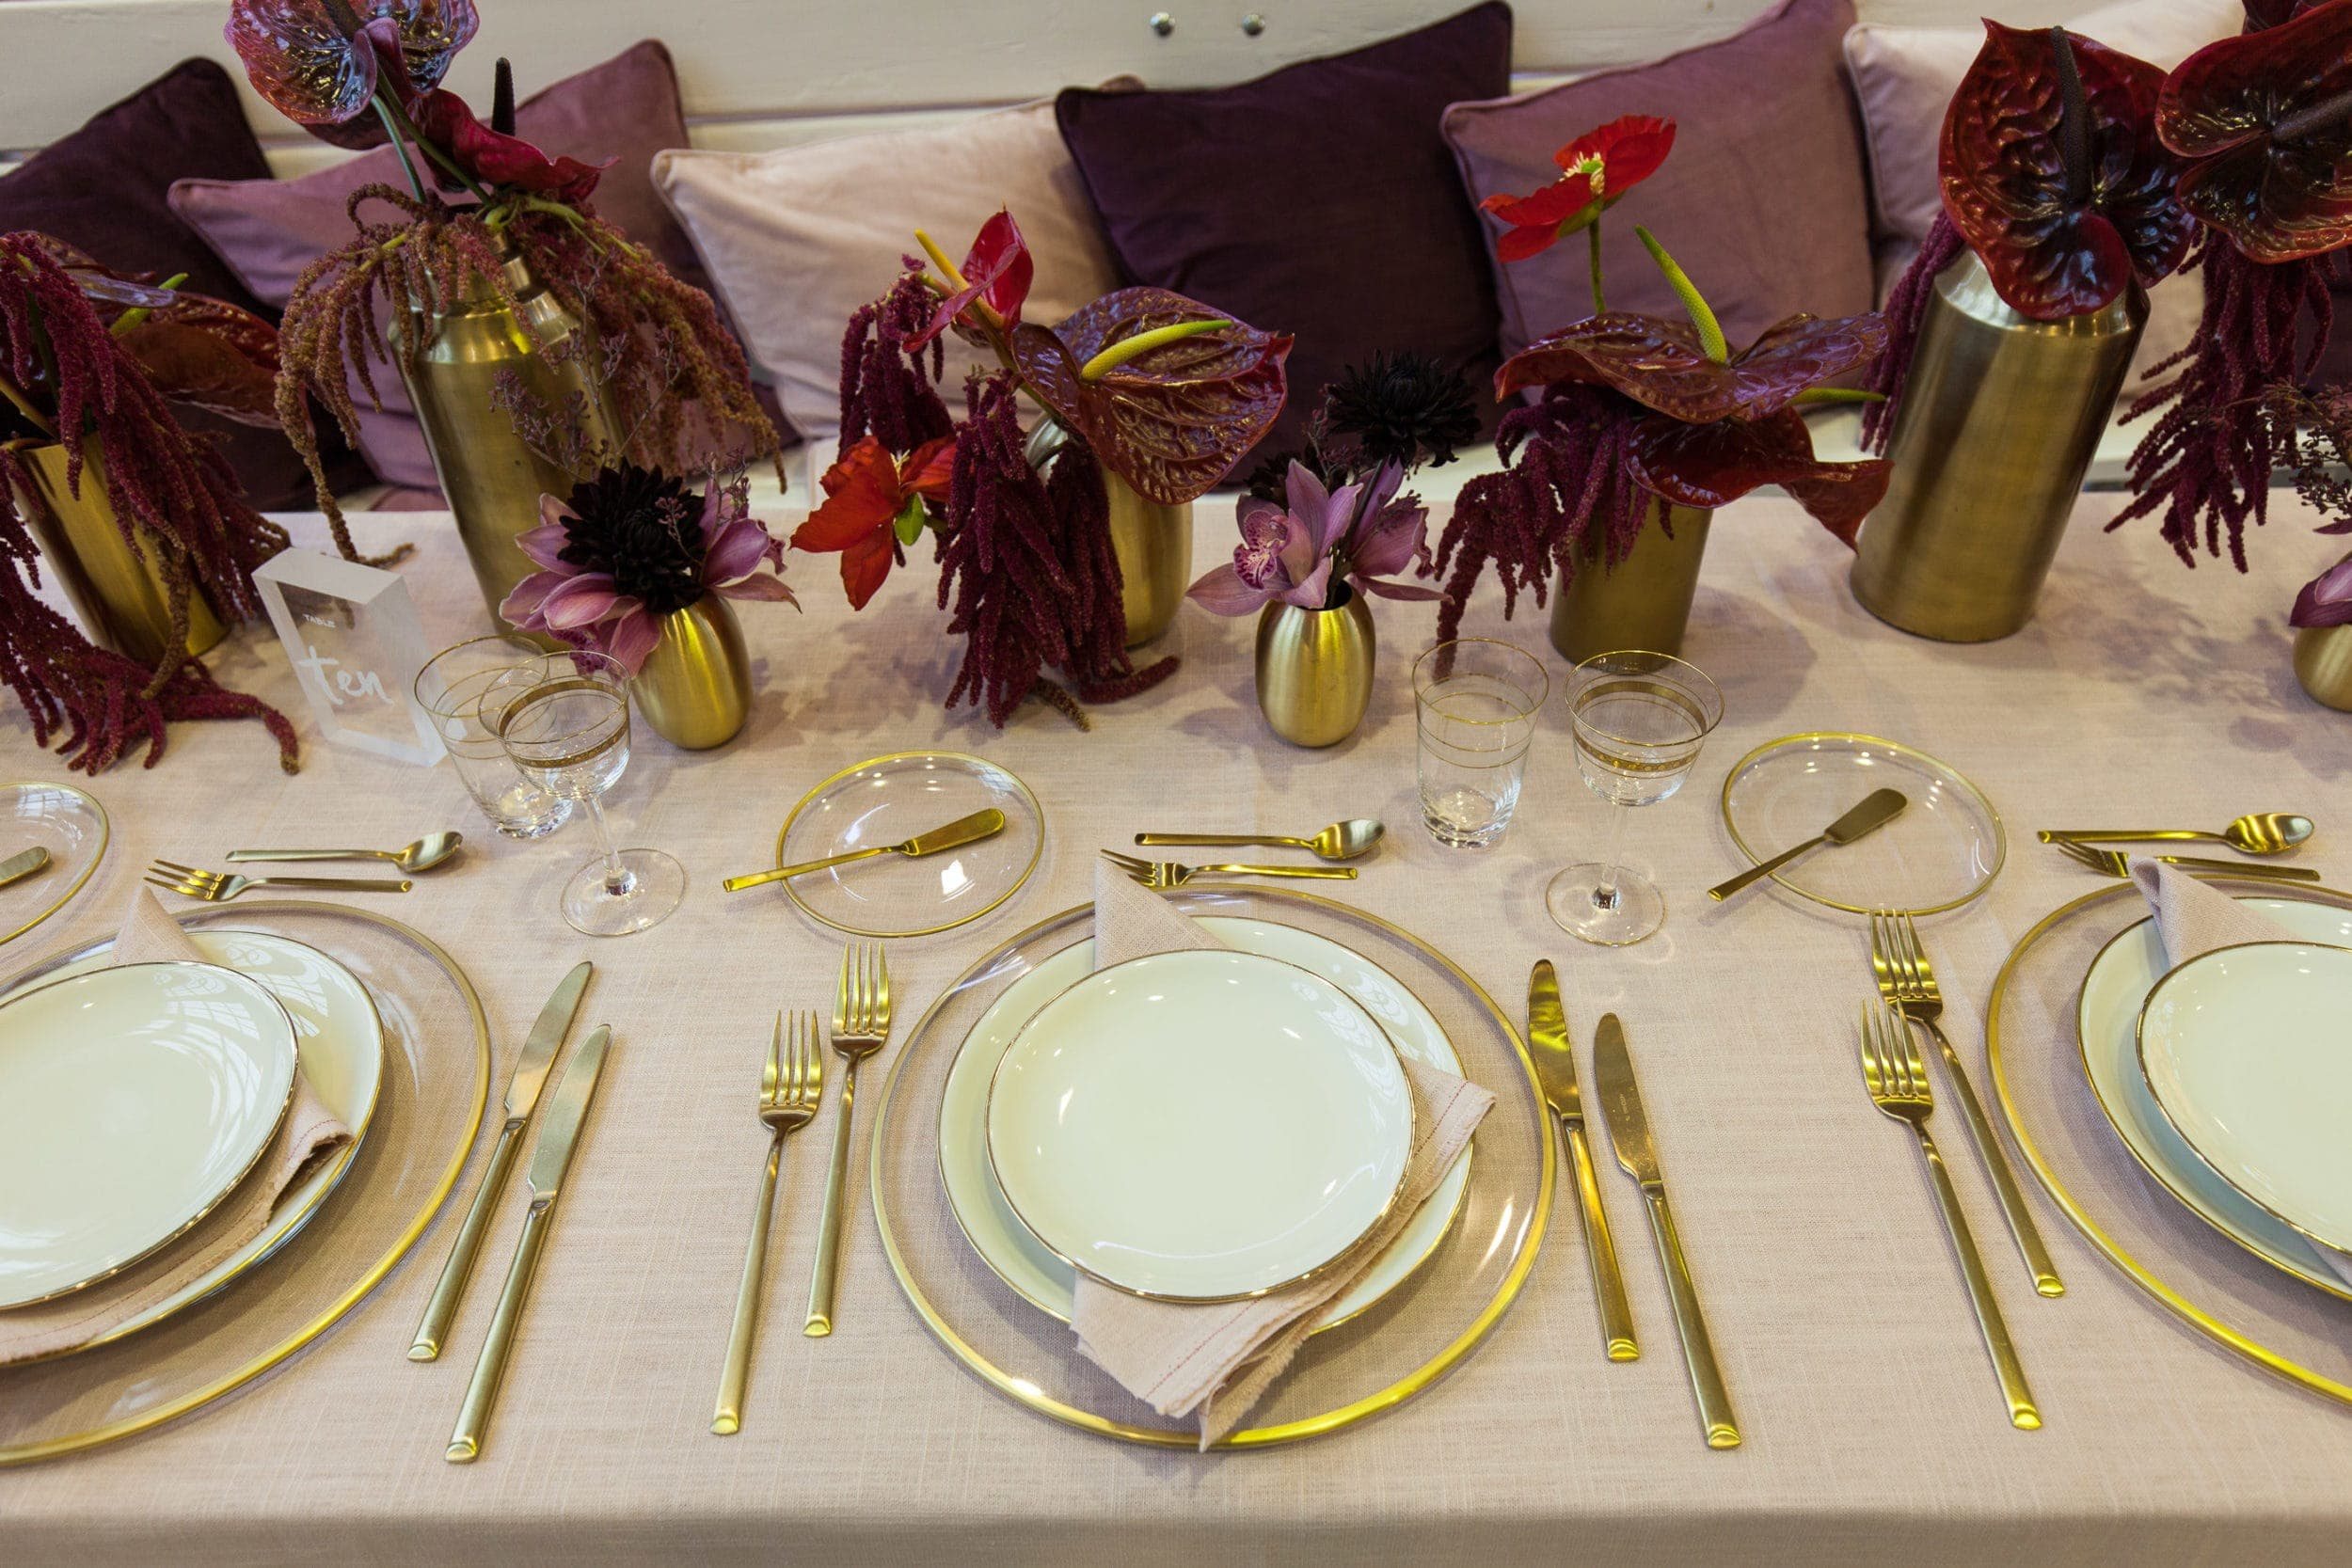 Bread Plate Sofia Clear Glass with Gold Rim | Plain bread plate made of clear glass with golden rim. You can rent as well the matching charger plate Sofia. | gotvintage Rental & Event Design